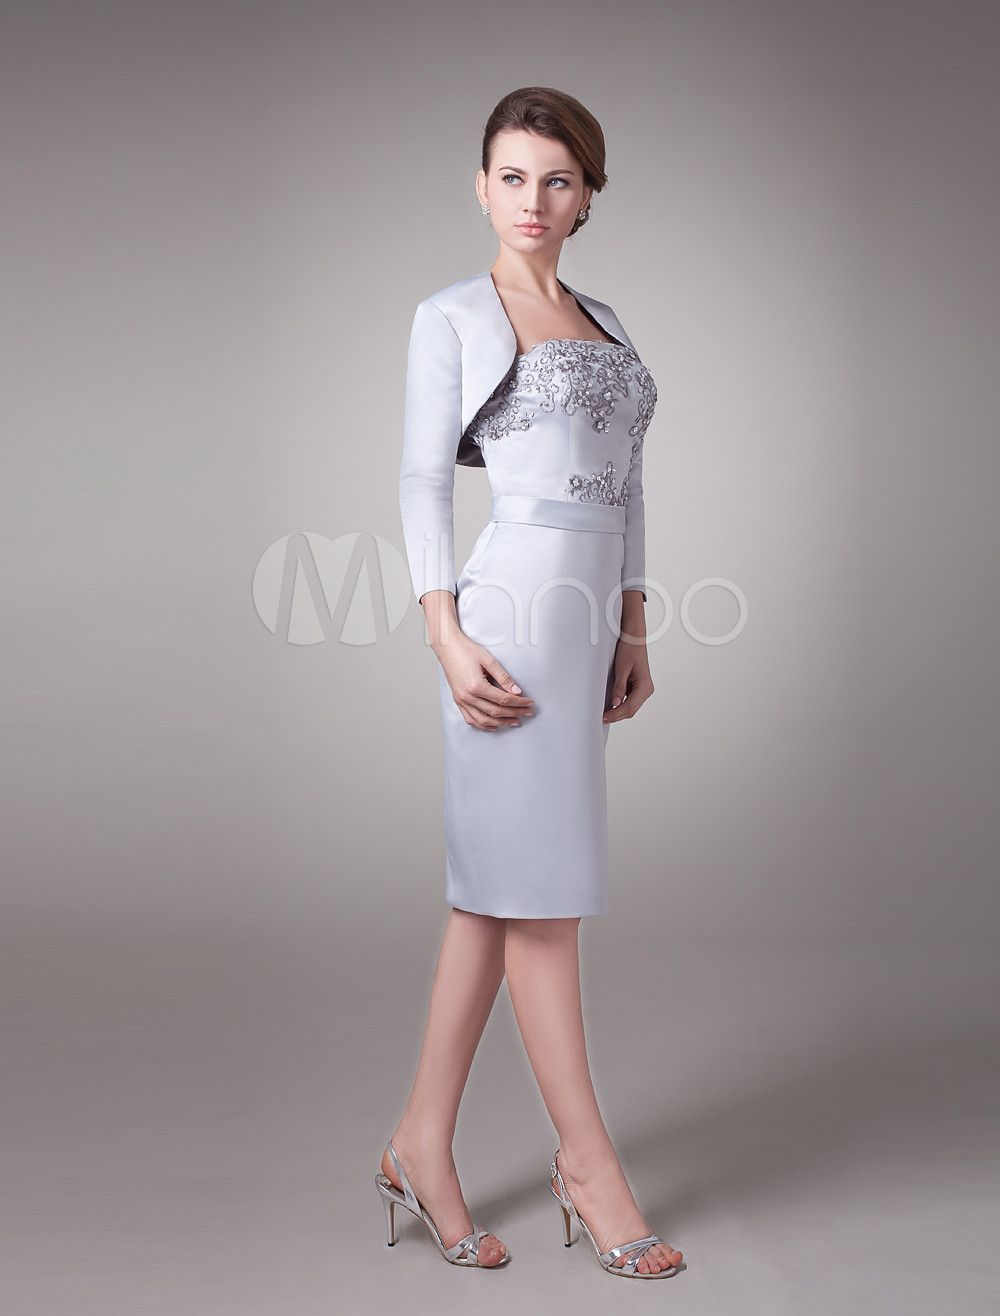 07ca3b4caf8 Mother Of The Bride Dress Two Piece Wedding Guest Dresses Beaded Silver  Satin Short Wedding Party Dress Wedding Guest Dress  Piece